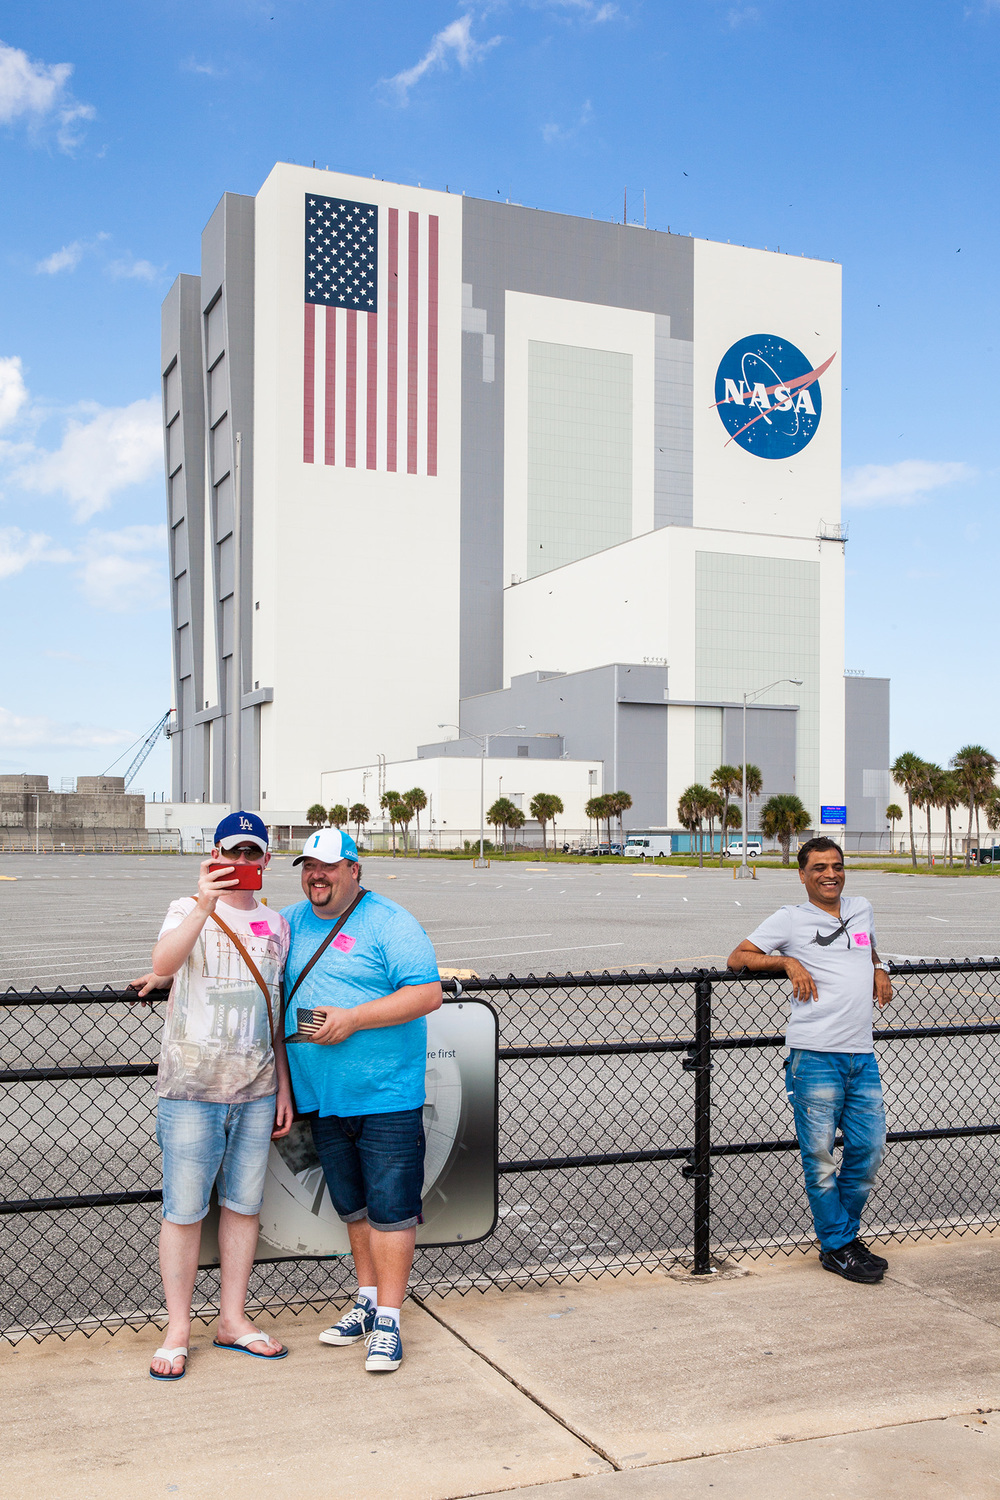 NASA building travel photography